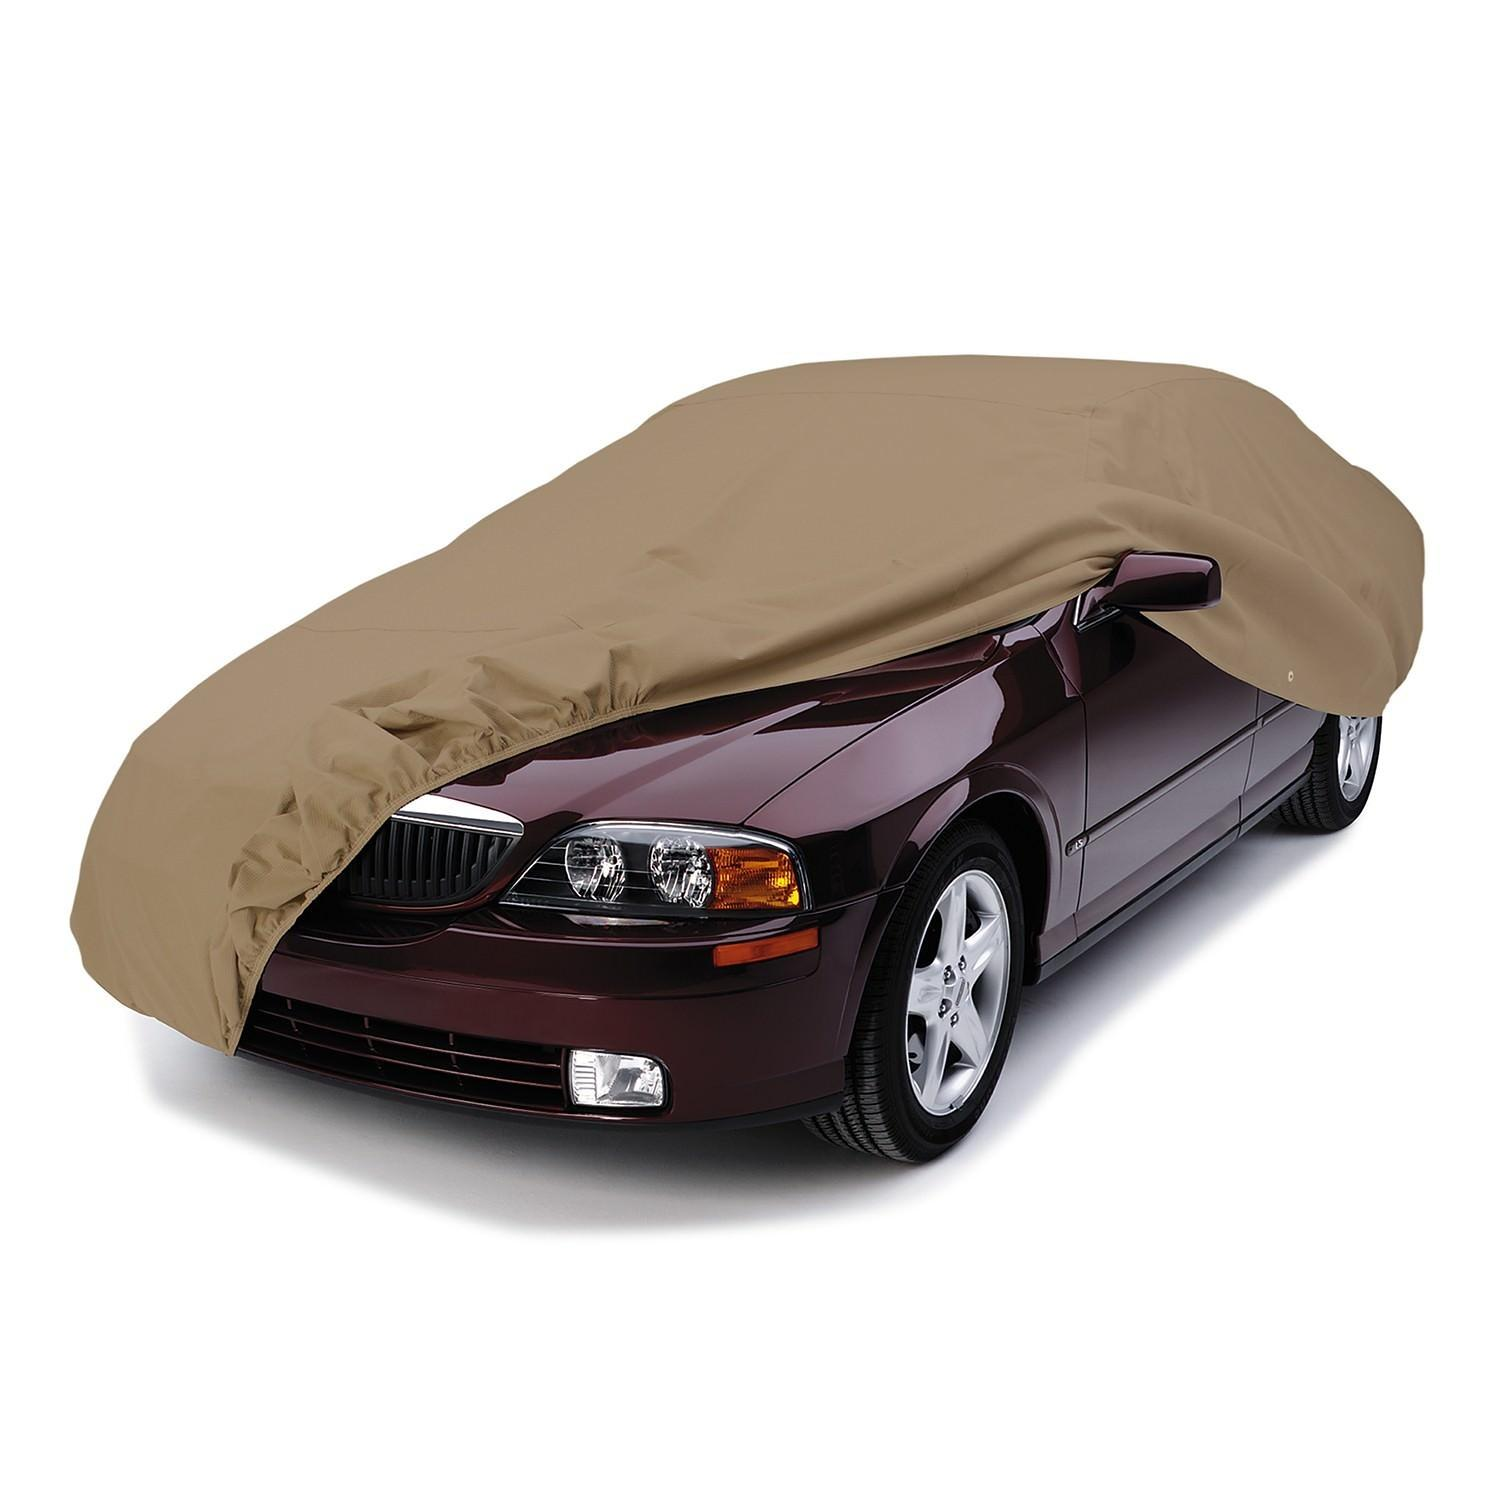 "Wolf Ready-Fit Car Cover Block-It 380 Series  | Semi Custom Fit | Fits: Station Wagon |15' 9"" to 16' 7"" Long 